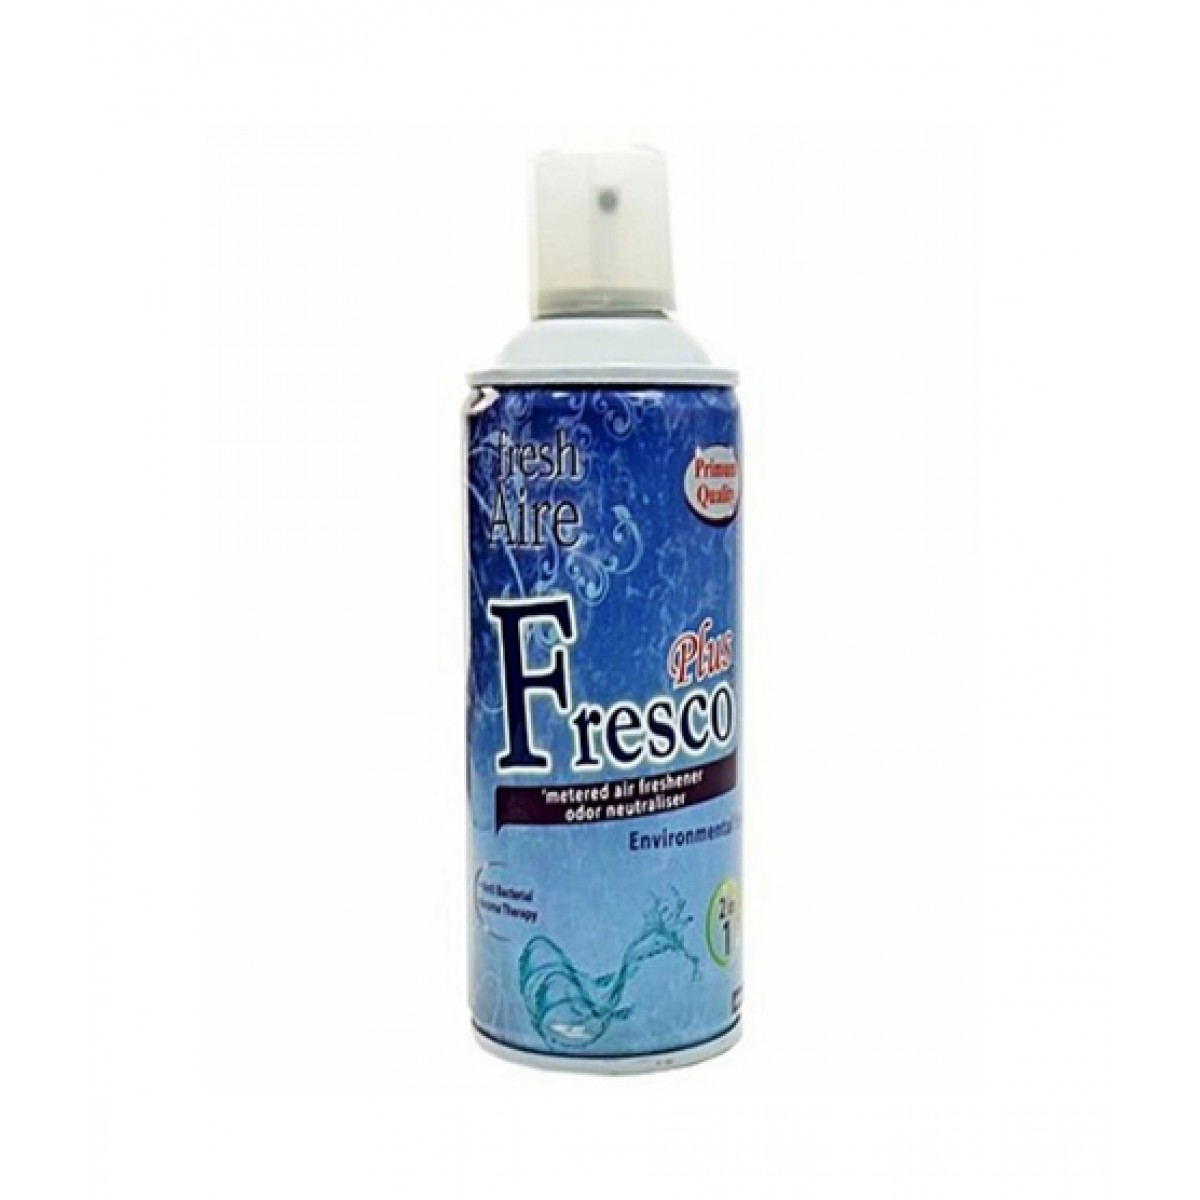 Kureshi Collections Fresco Plus Desire Air Freshner 300ml